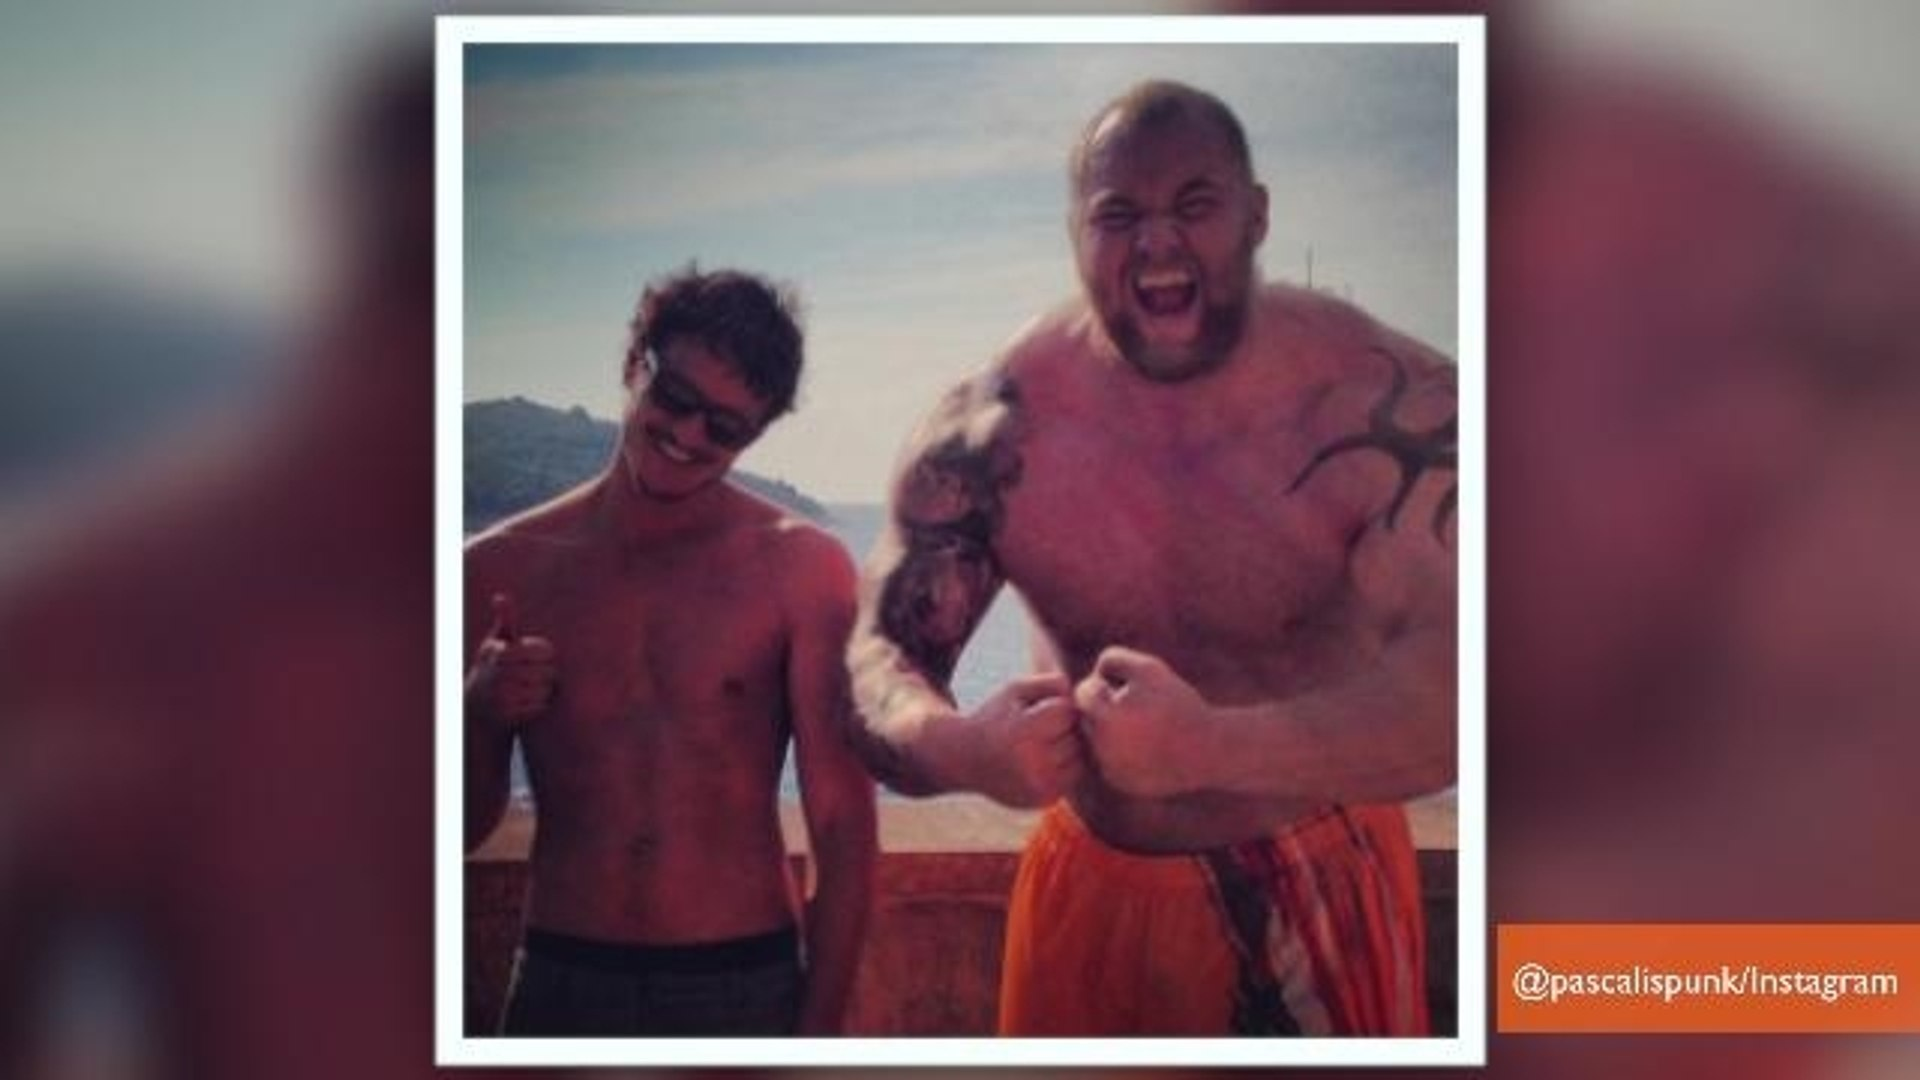 Upset by 'Game of Thrones?' Cast Member Instagrams Show it's Only Acting